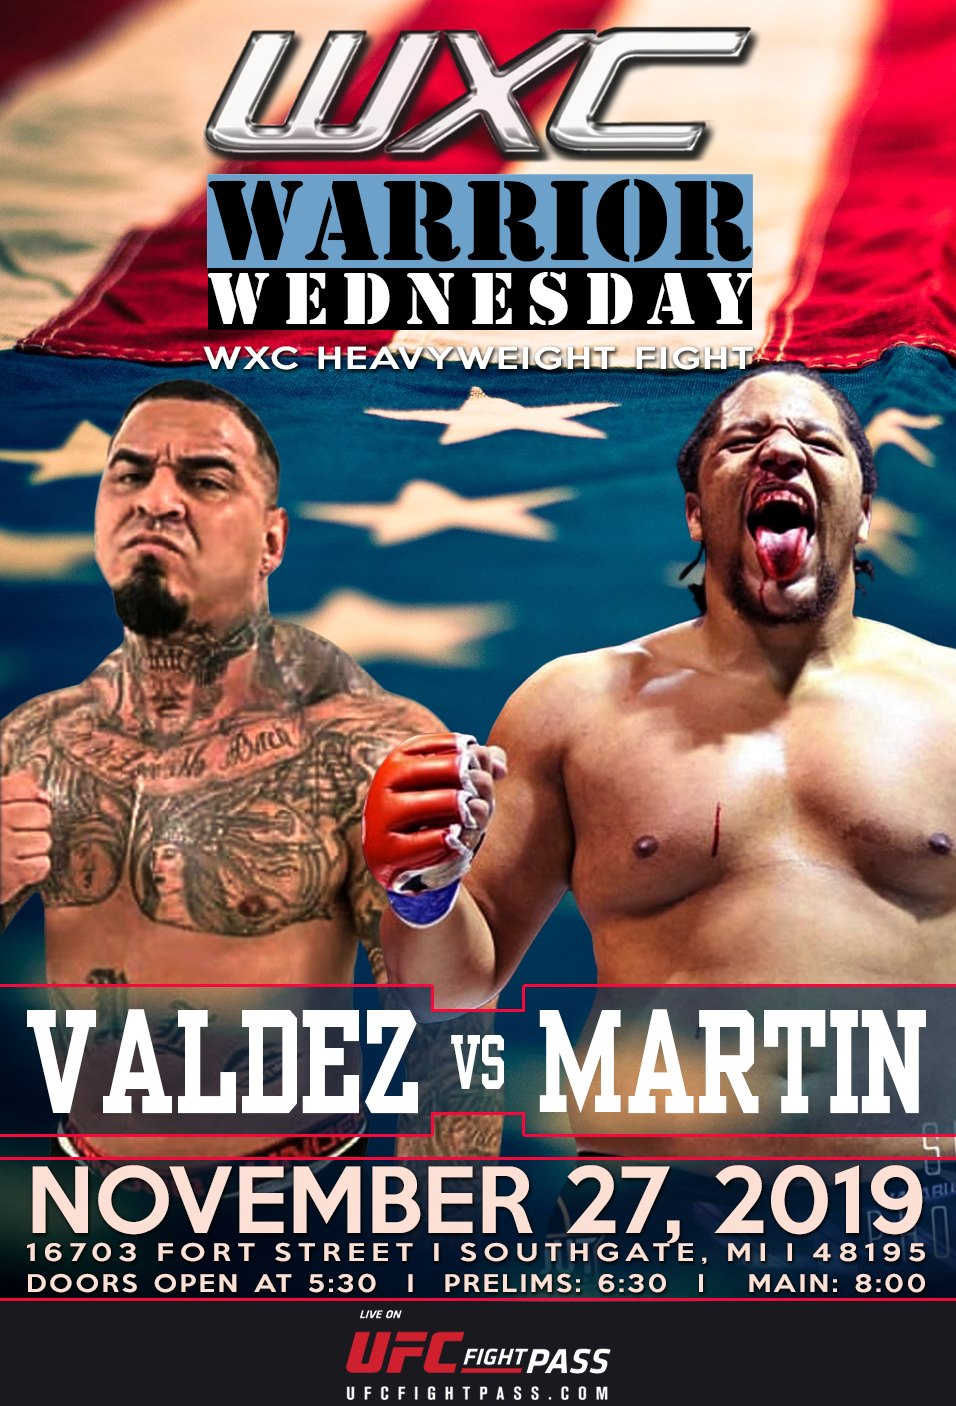 Thanksgiving Eve - Warrior Wednesday IX pairs Abel Valdez against Jonathan Martin